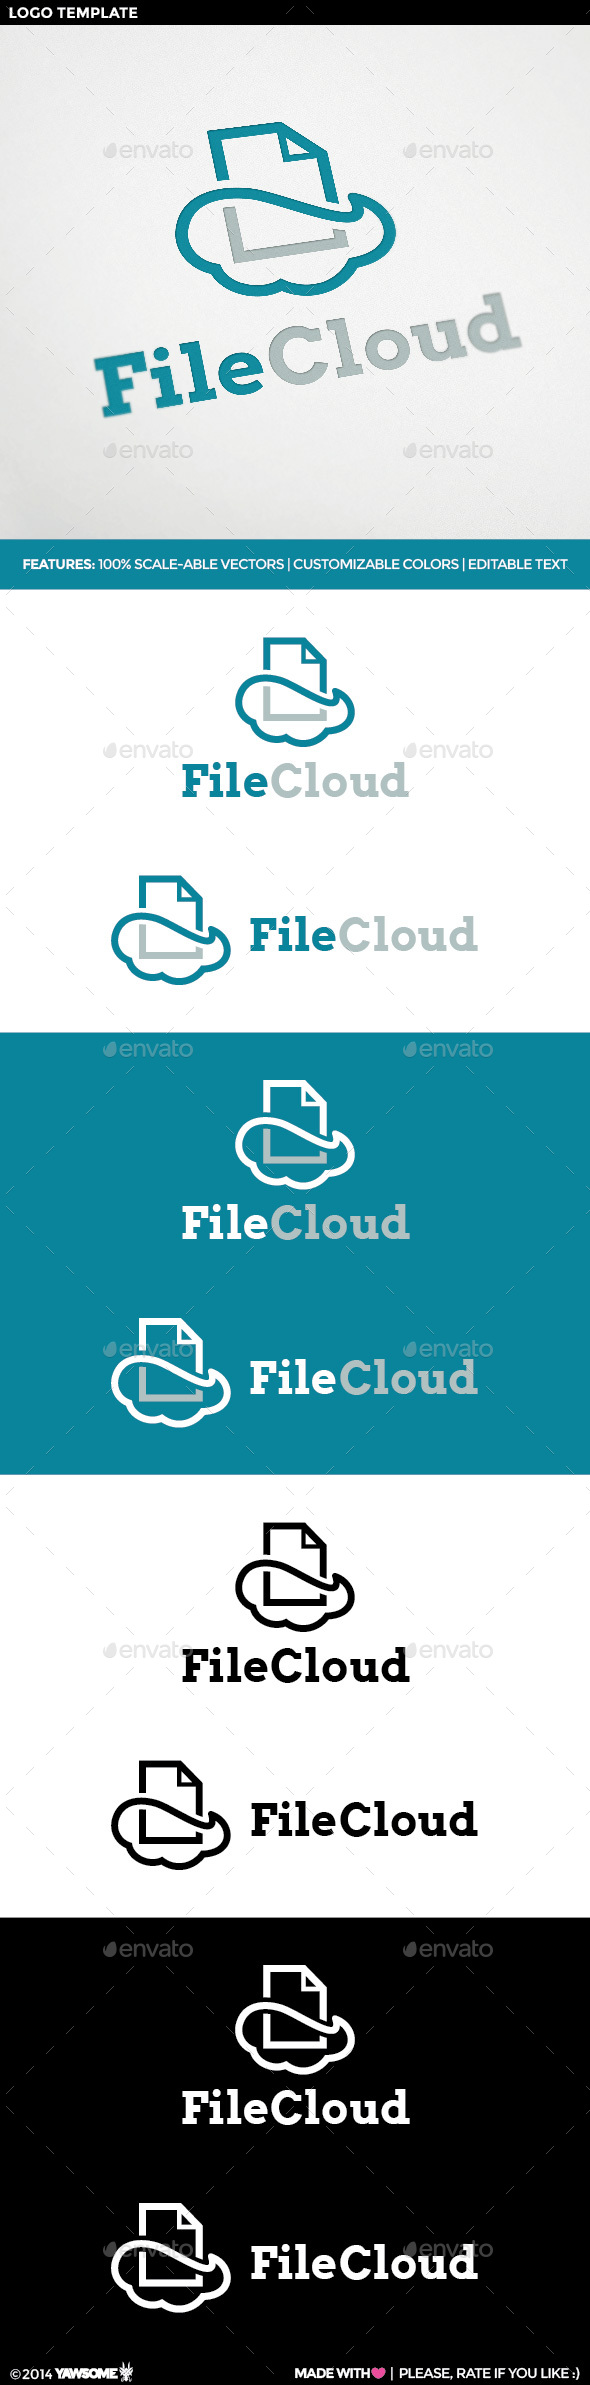 File Cloud Logo